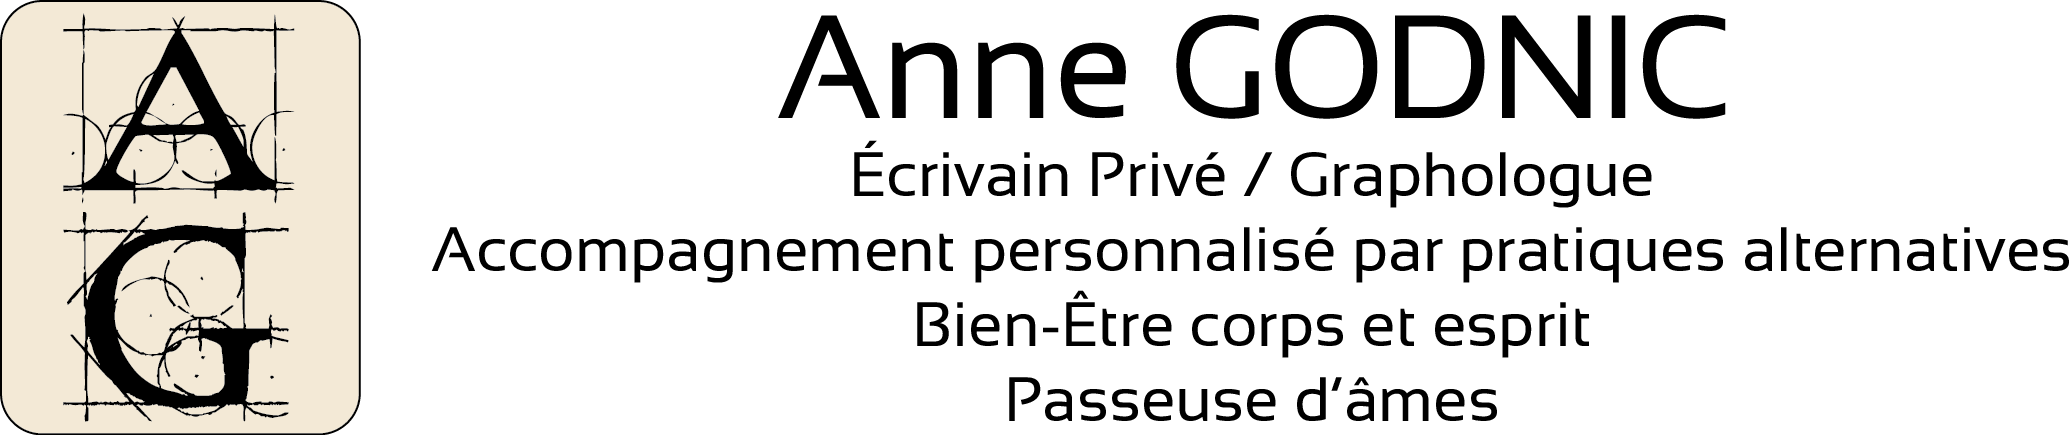 Anne godnic crivain public crivain priv graphologue for Ecriture en miroir psychologie